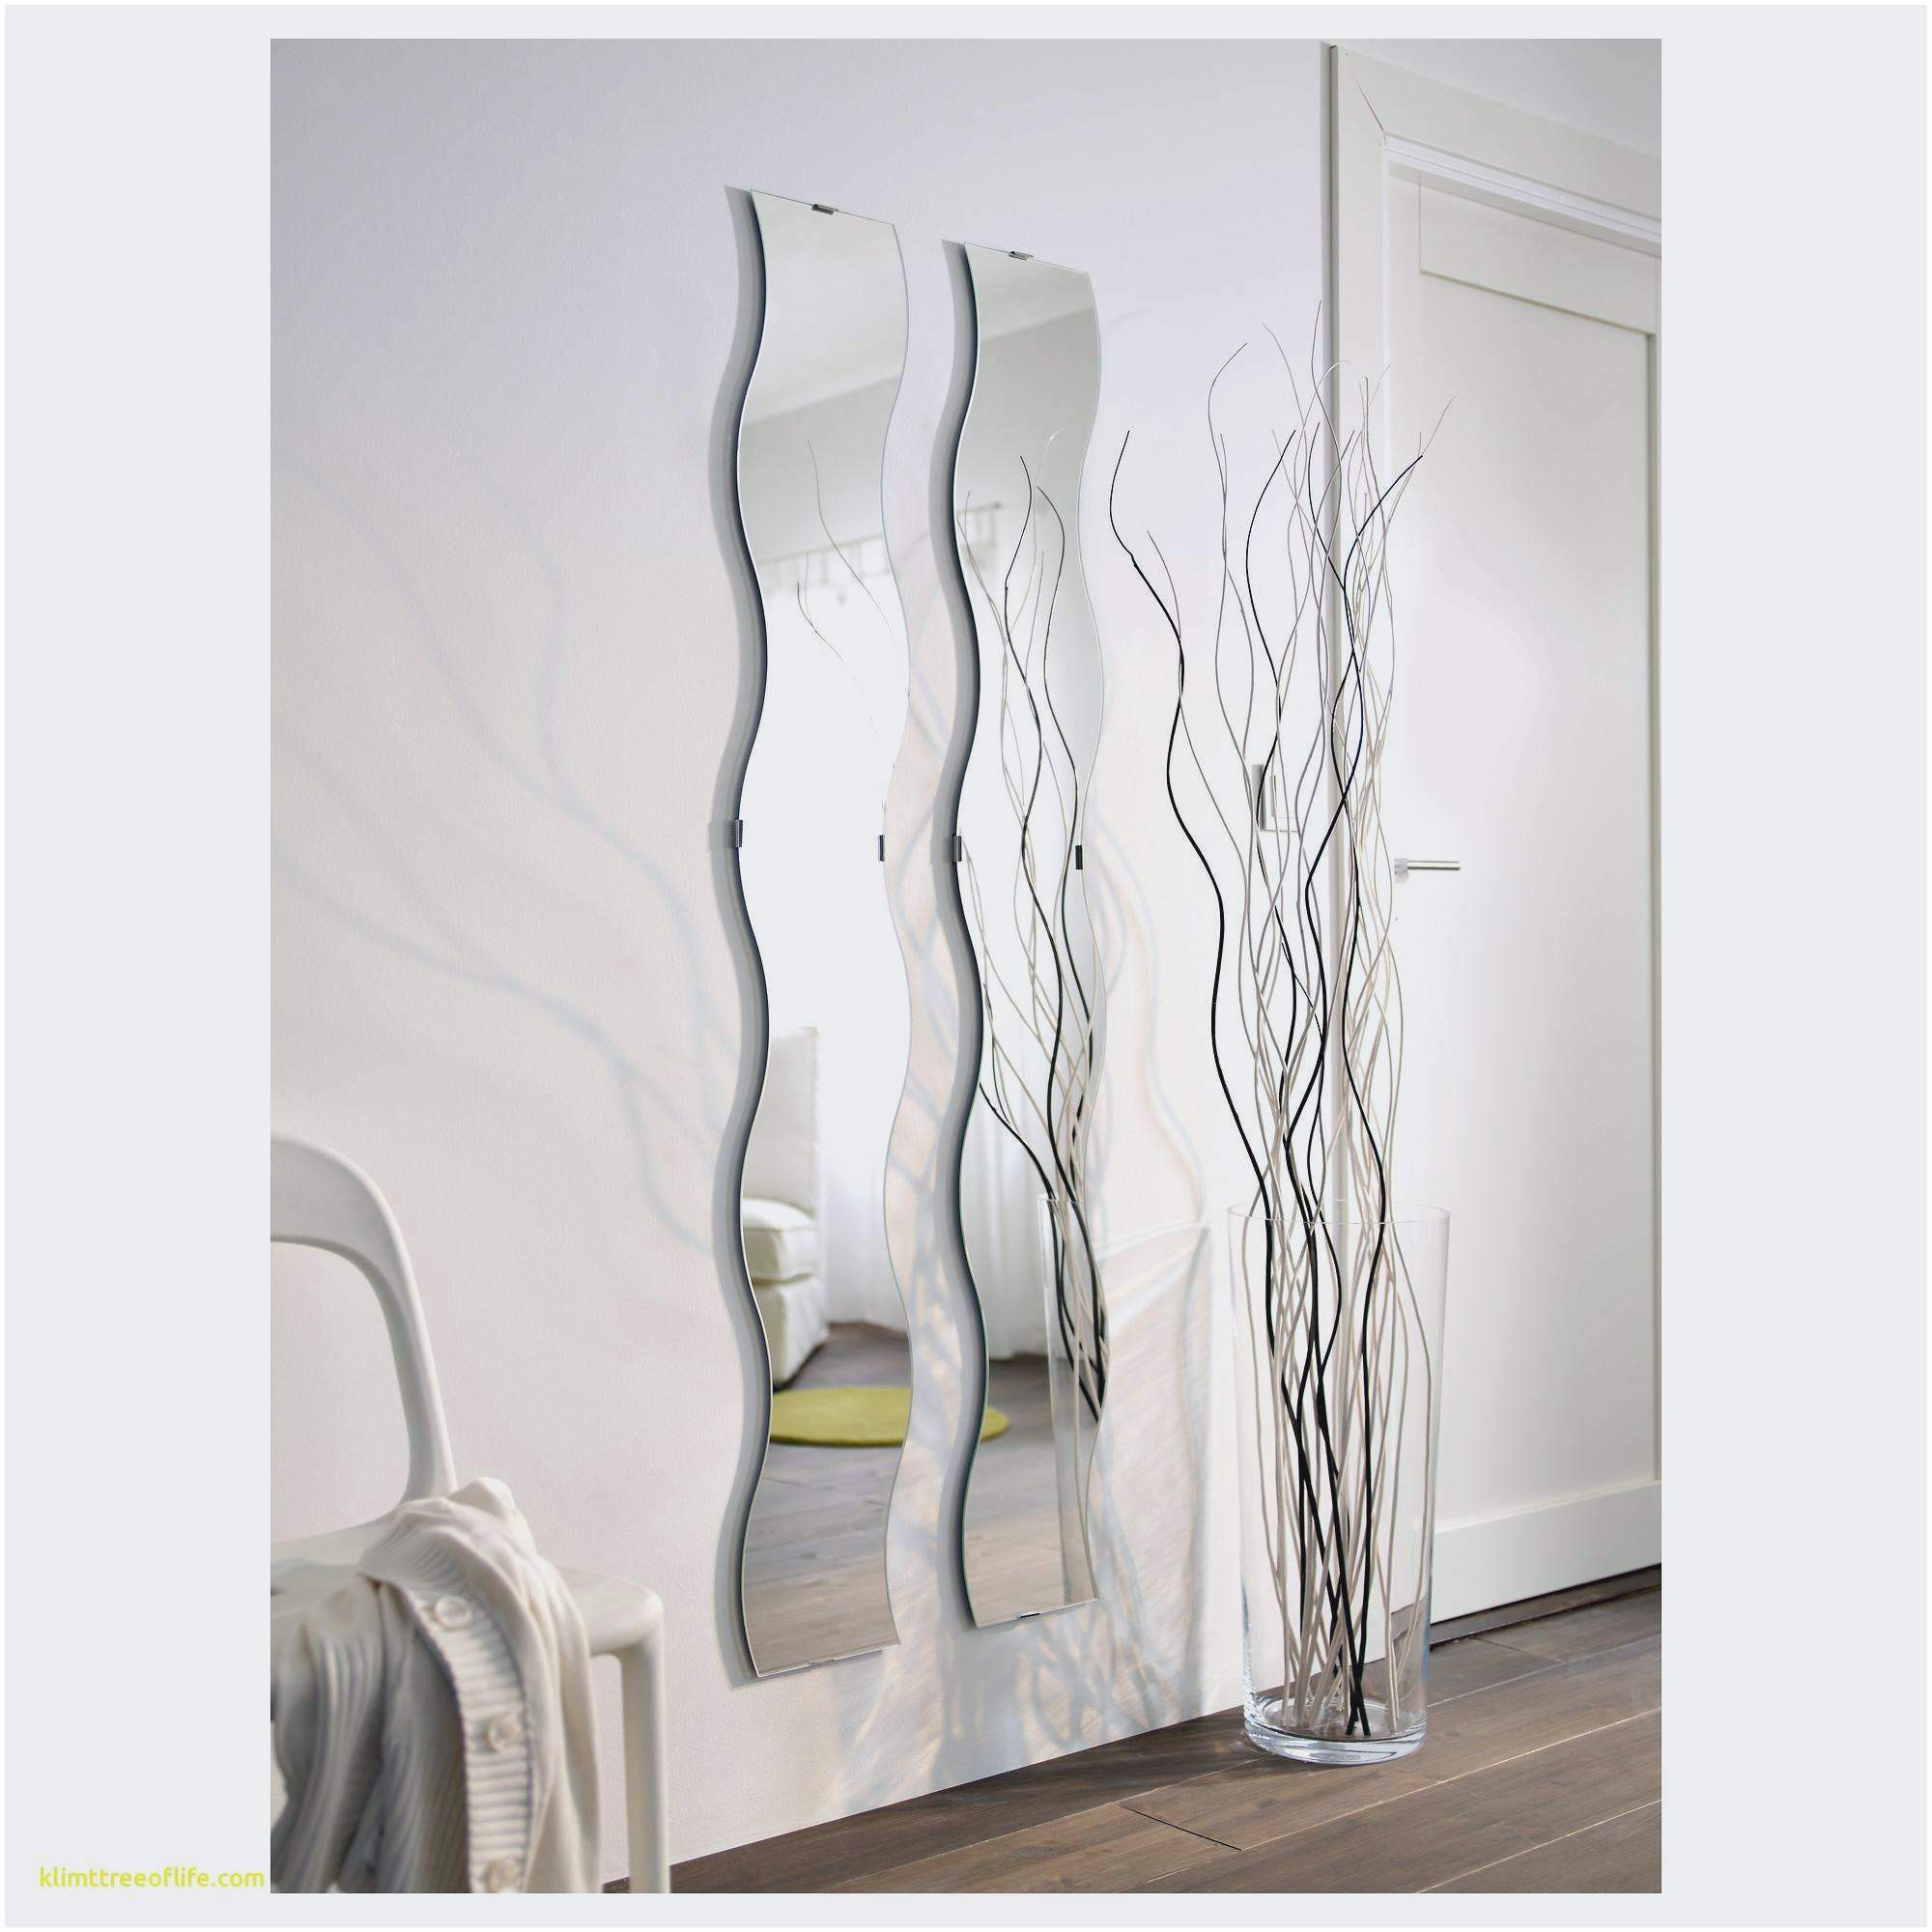 16 Famous Extra Large Clear Glass Floor Vases 2021 free download extra large clear glass floor vases of 37 excellent clear glass tiles view independentinnovation net with glass tile fireplace surround favorite new design ikea mantel wonderful cylinder vas